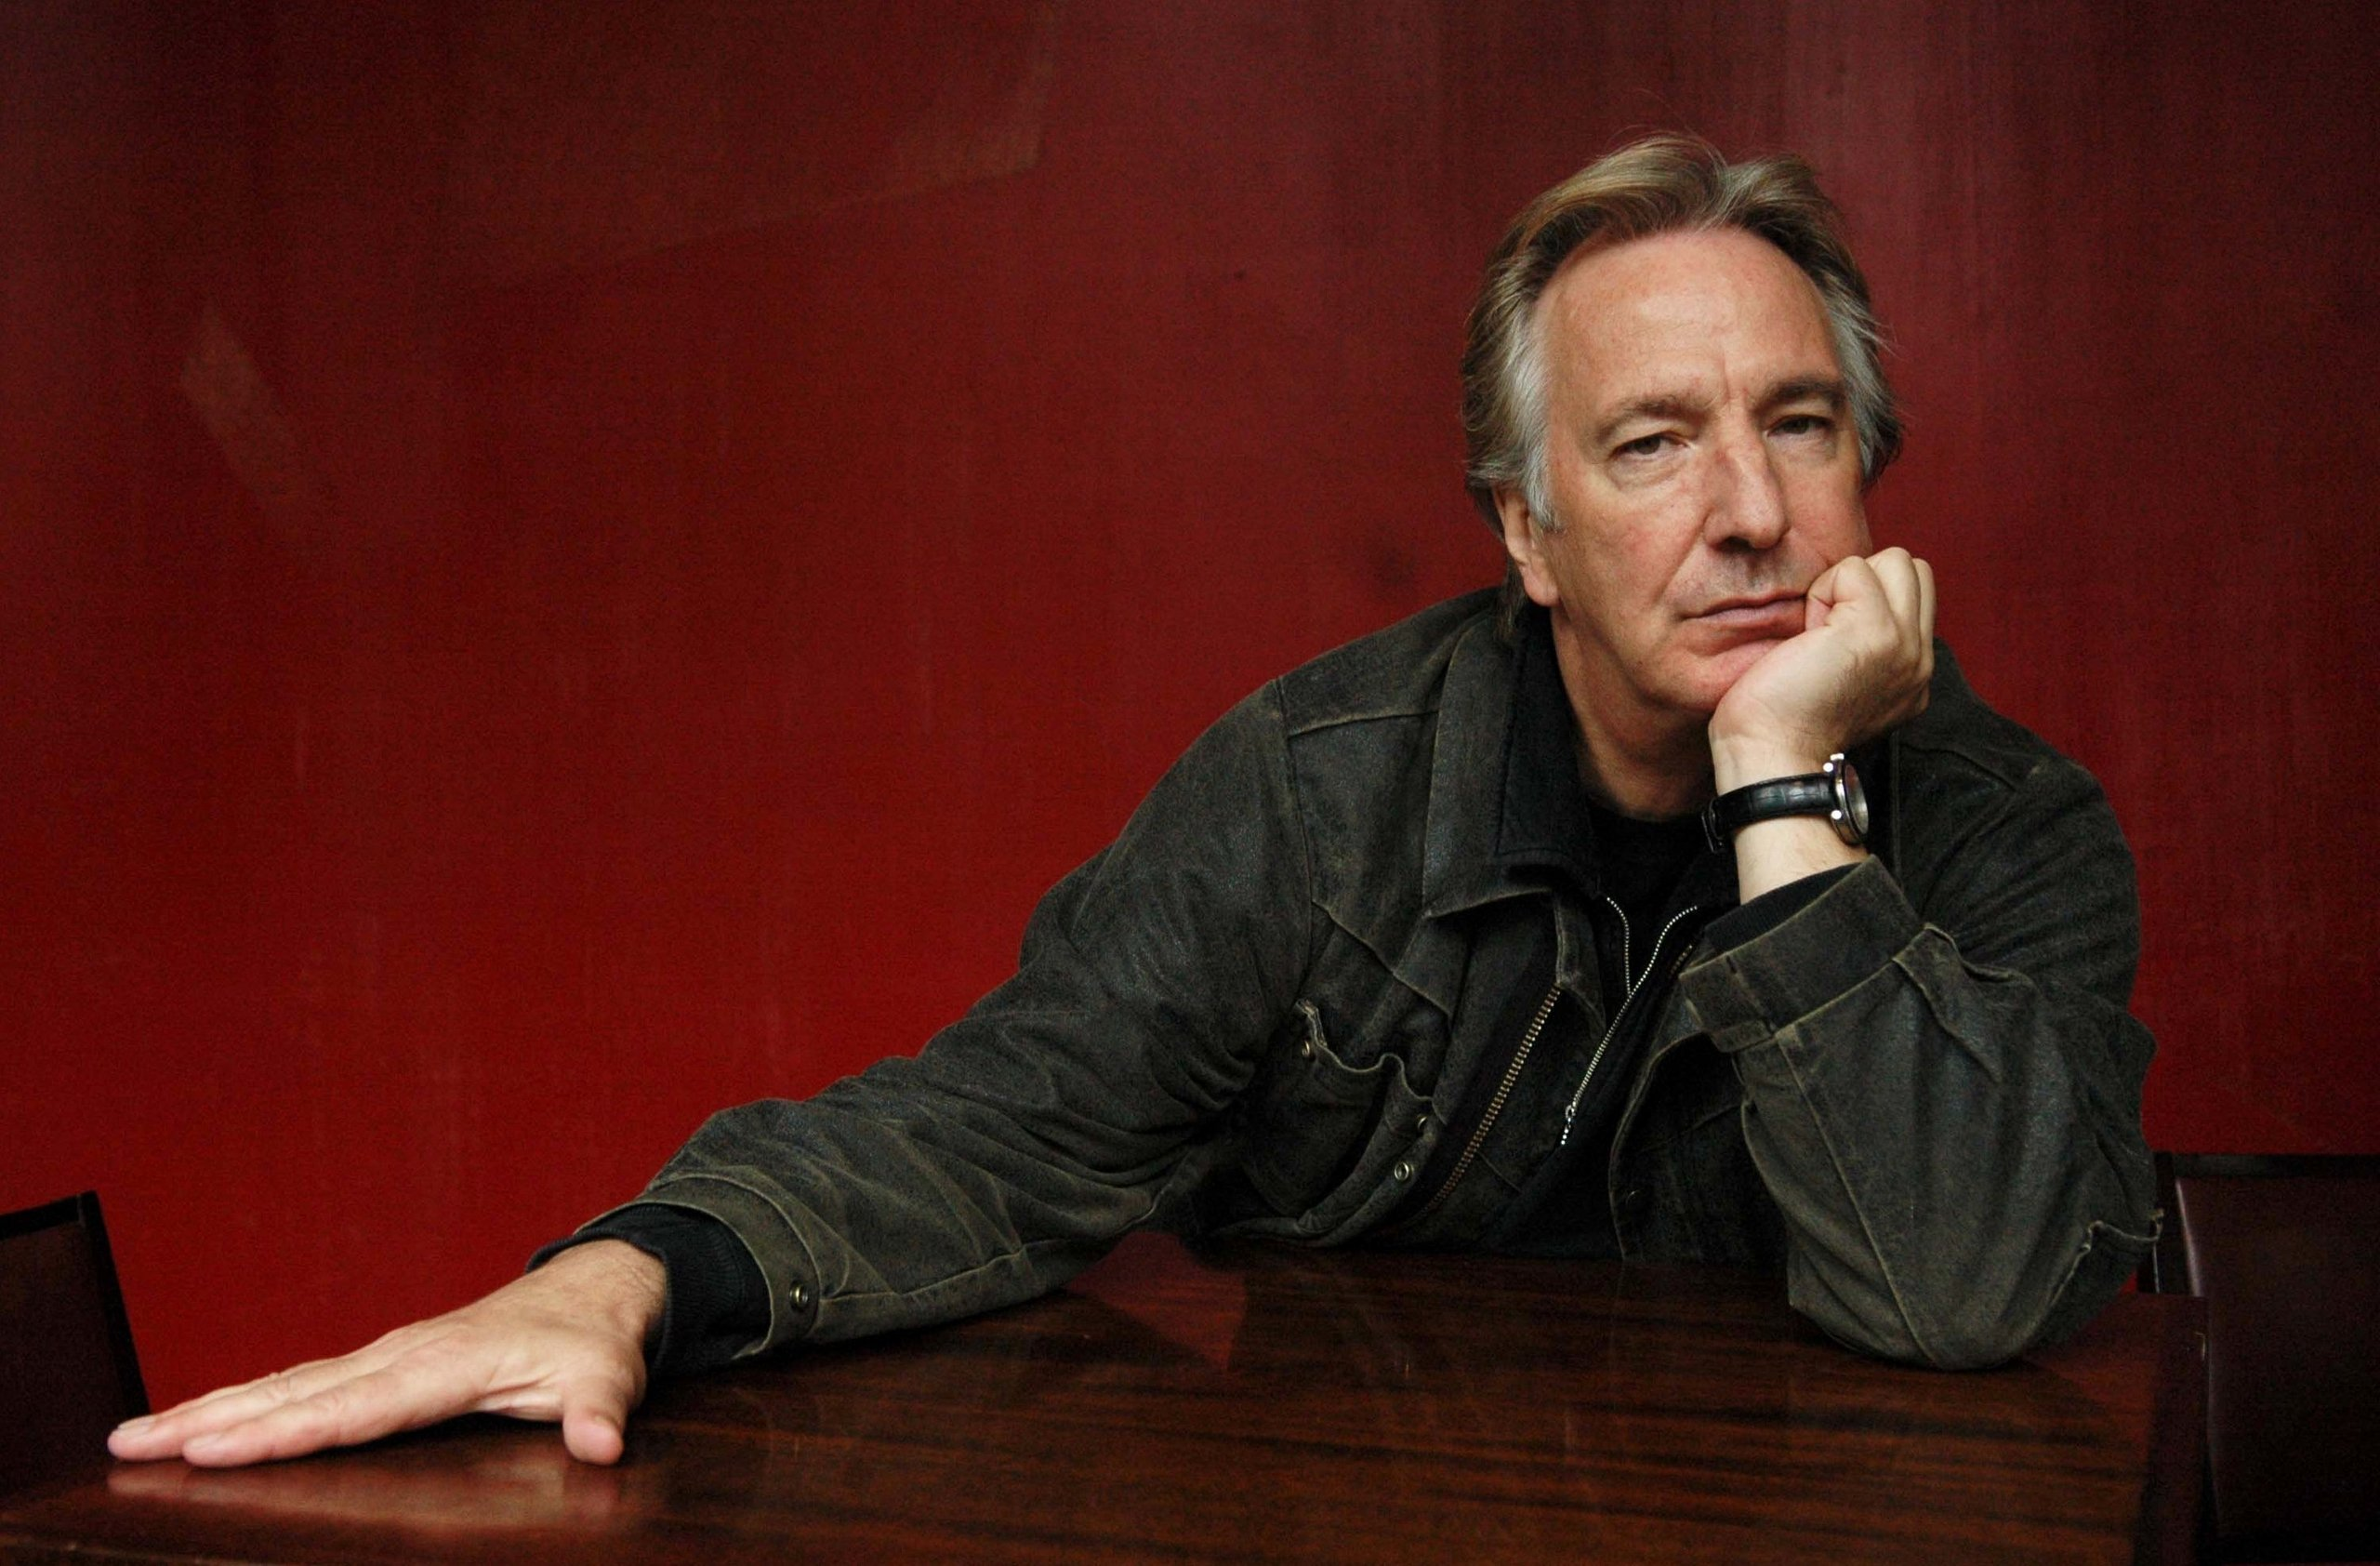 Daily Grindhouse | RIP ALAN RICKMAN (1946-2016) - Daily Grindhouse